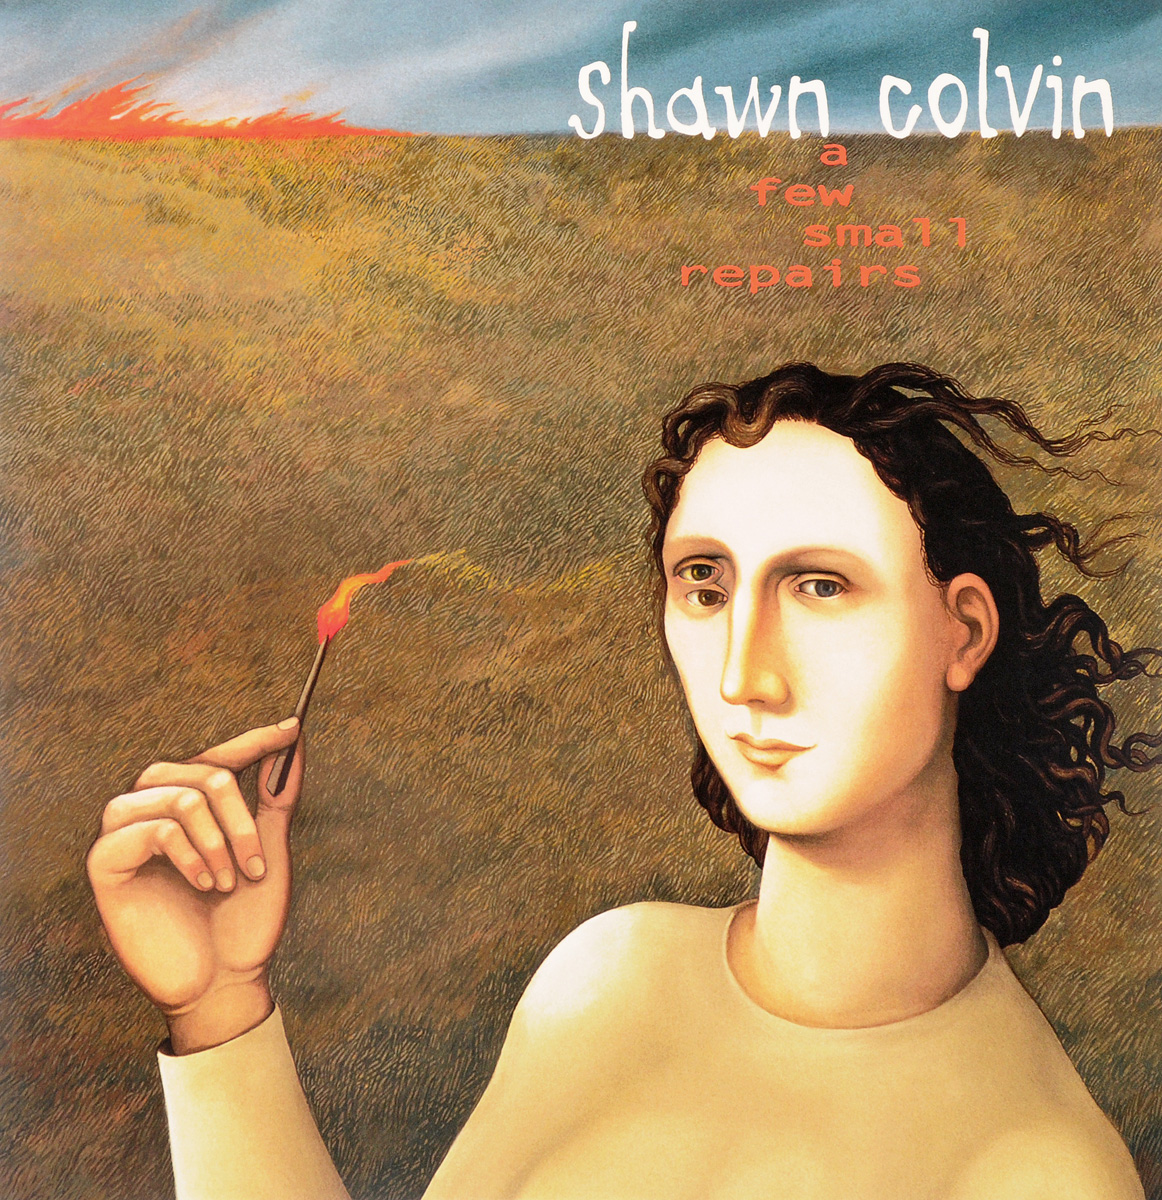 Shawn Colvin. A Few Small Repairs. 20th Anniversary Edition (LP)